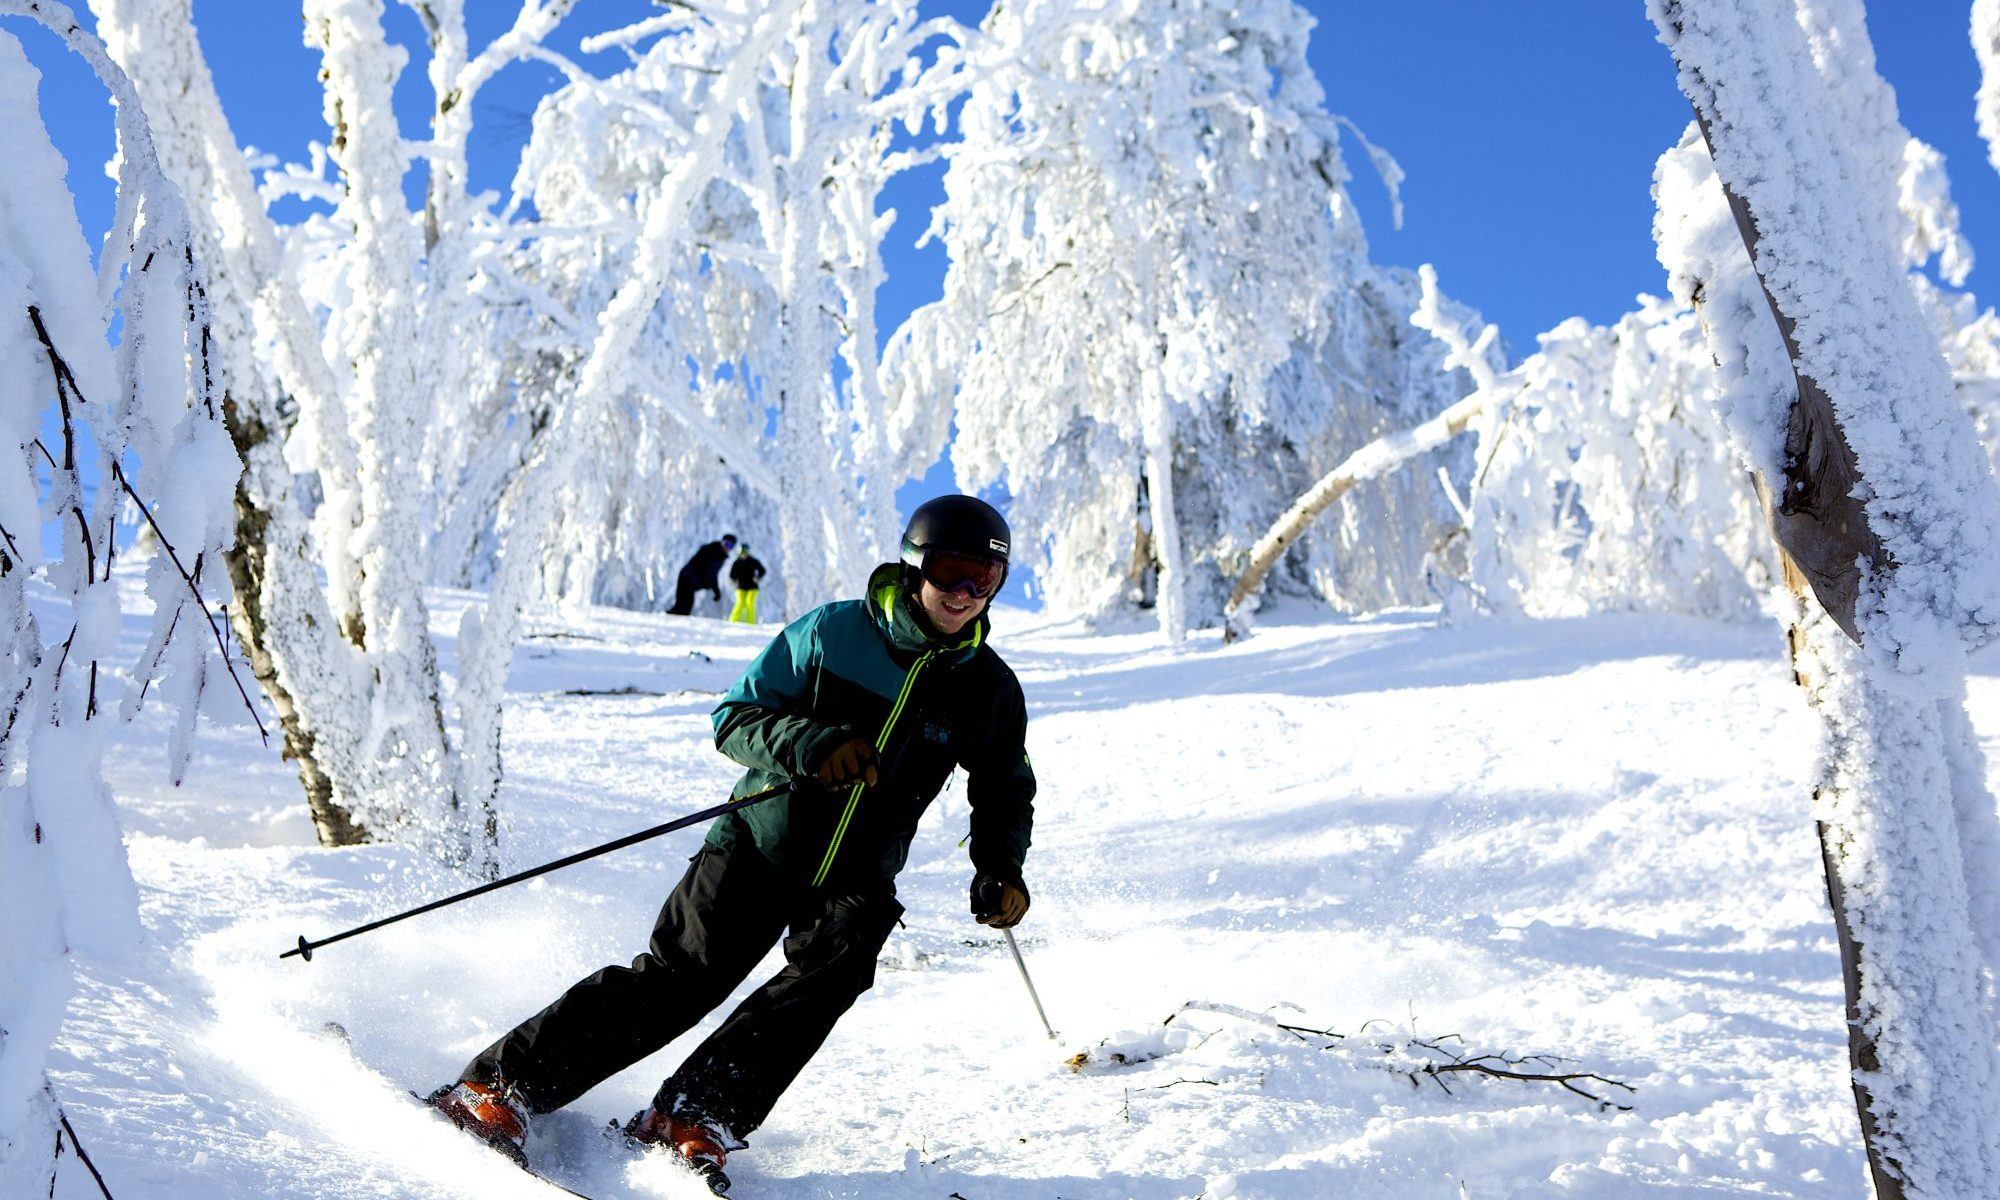 Okemo Resort picture. SkiVermont.com - Over 4 million skier visits for Vermont.